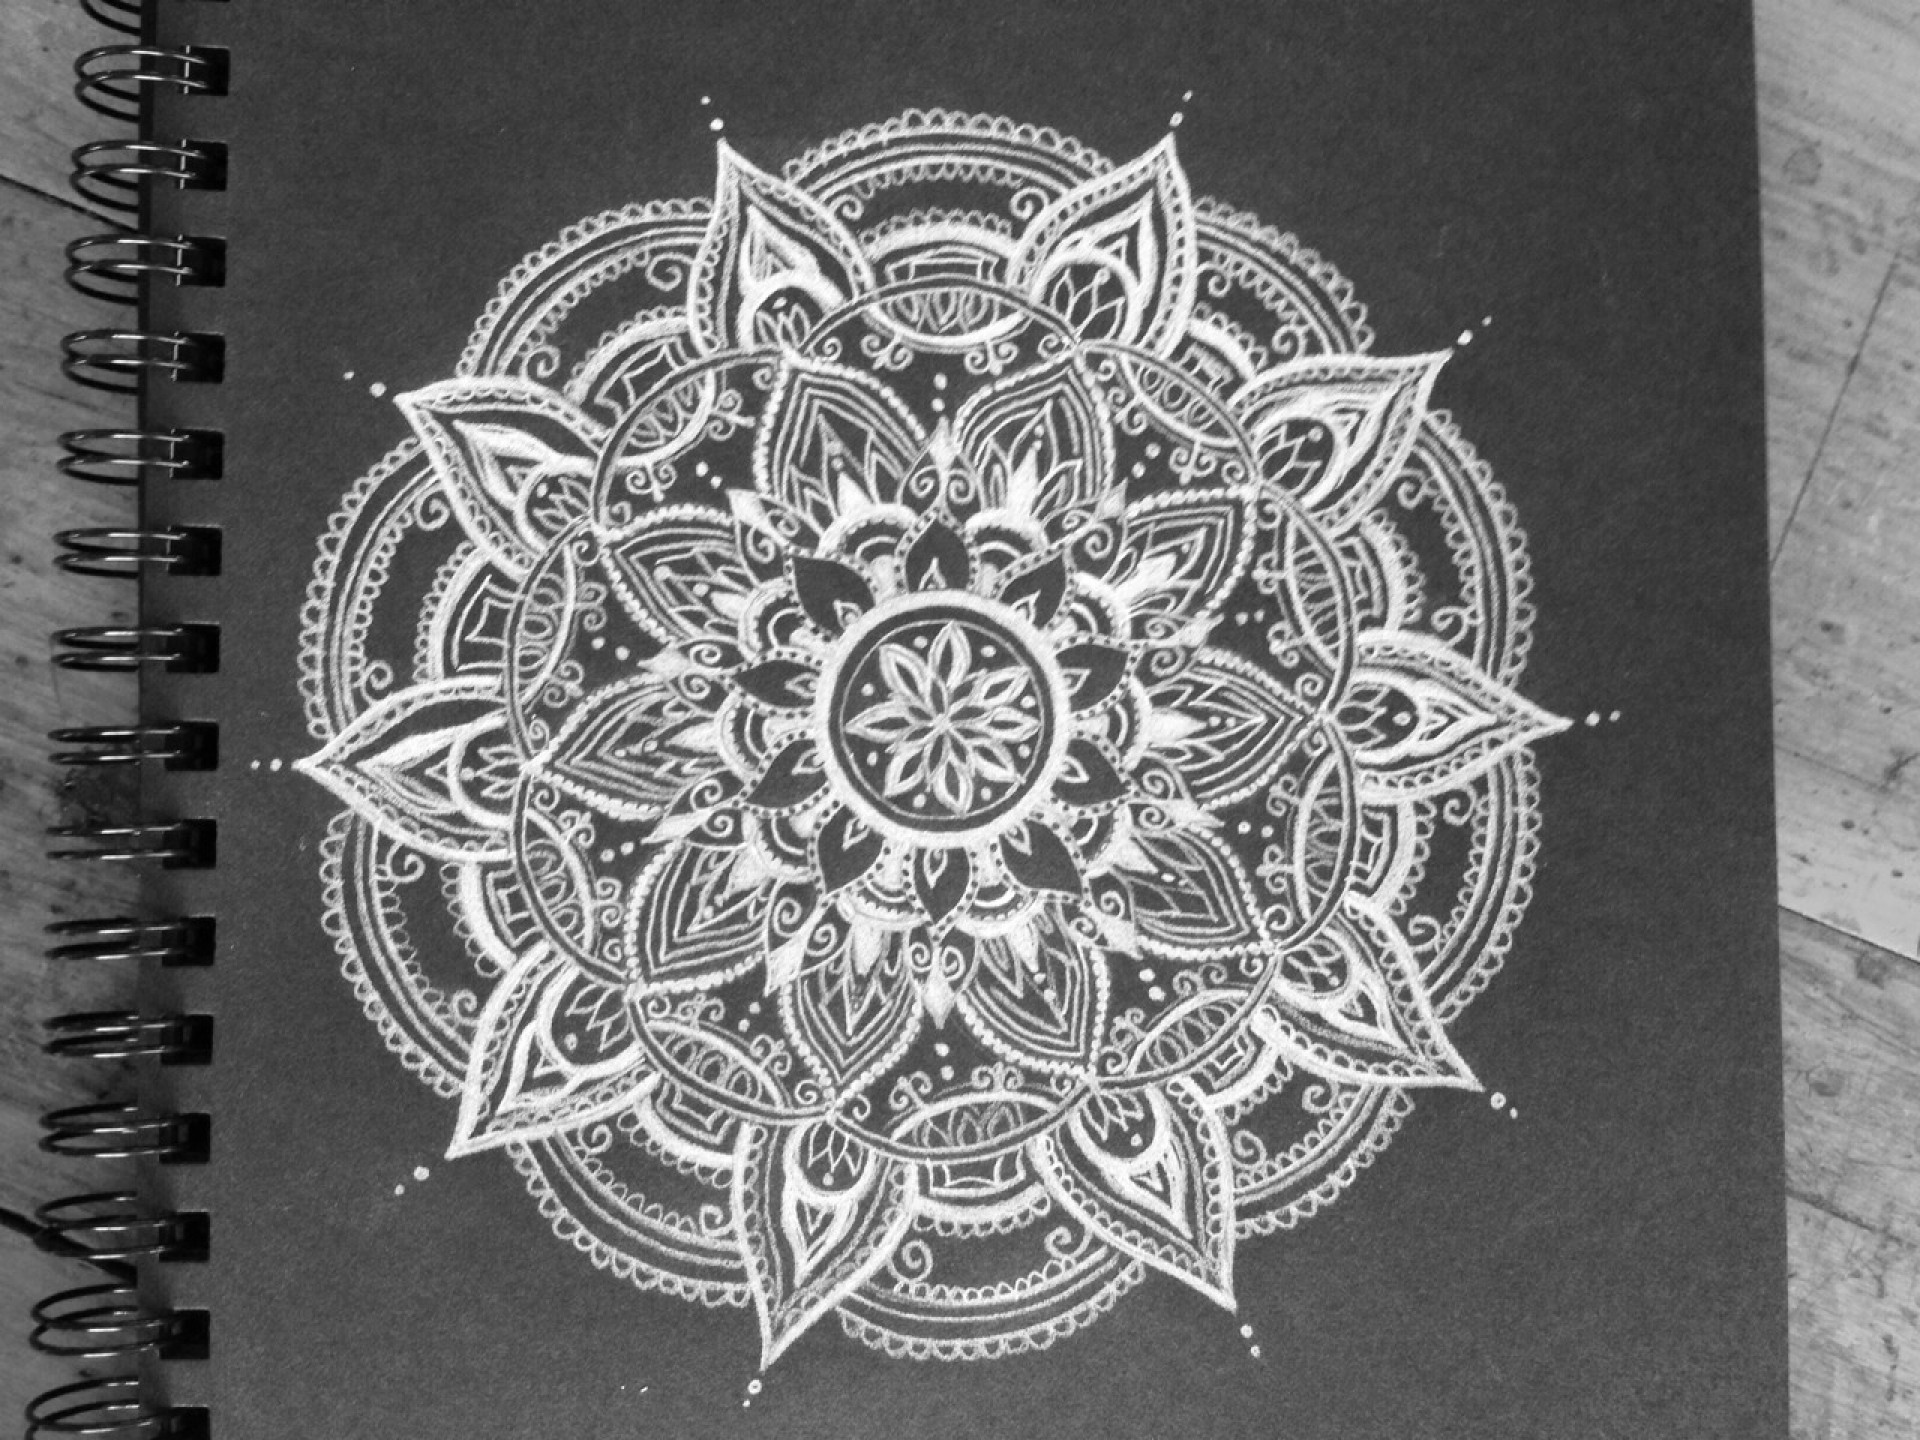 Download Mandala Tumblr Black And White Background Wallpapers HD